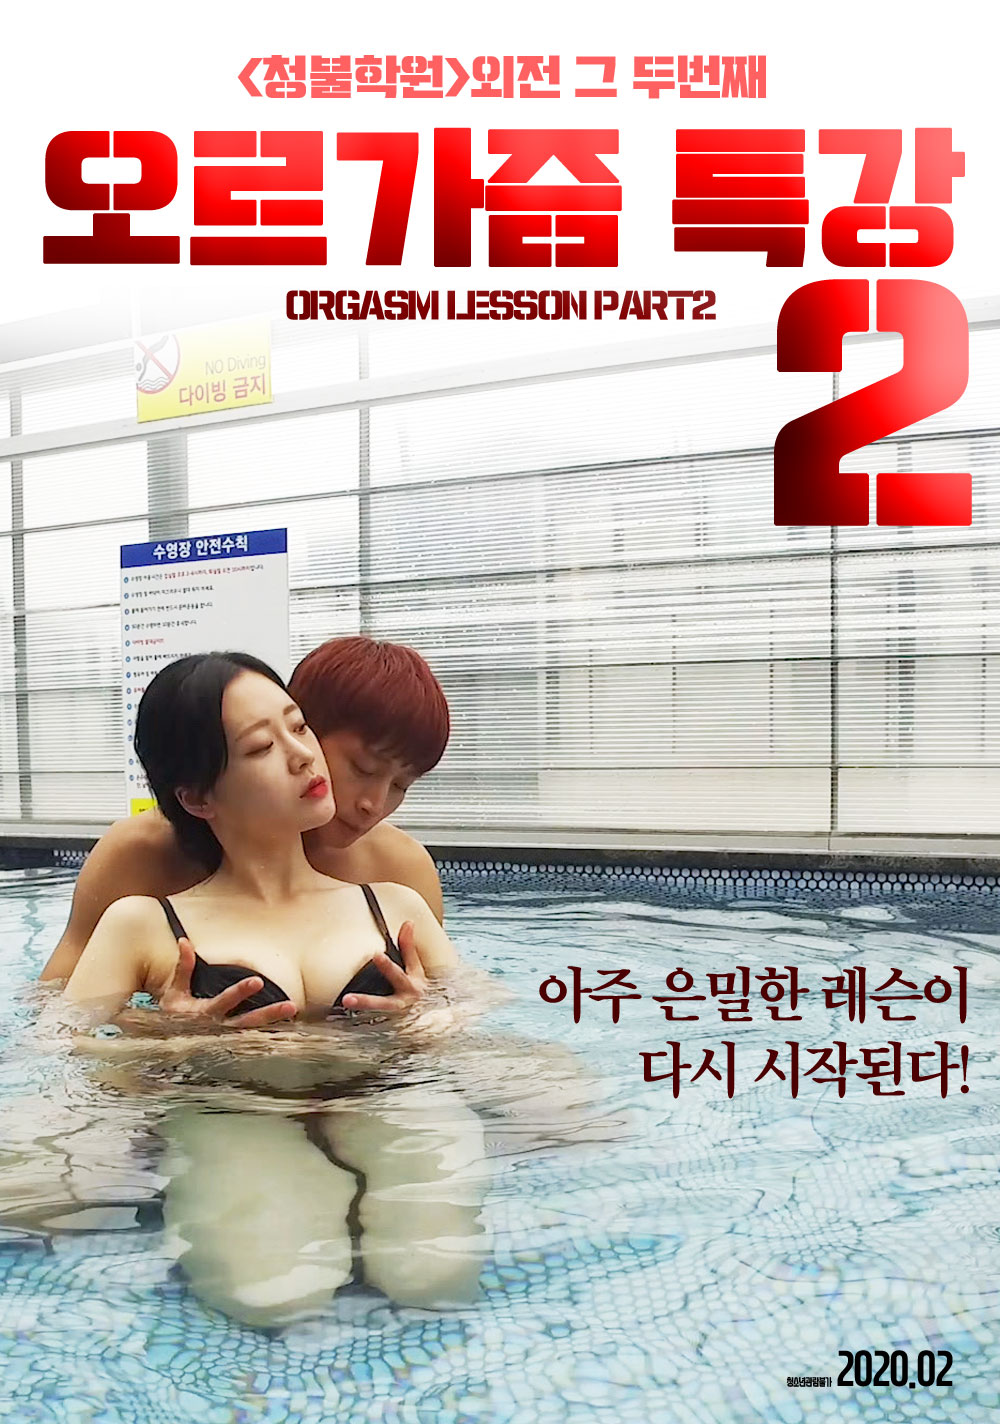 Orgasm Lecture 2 Full Korea 18+ Adult Movie Online Free